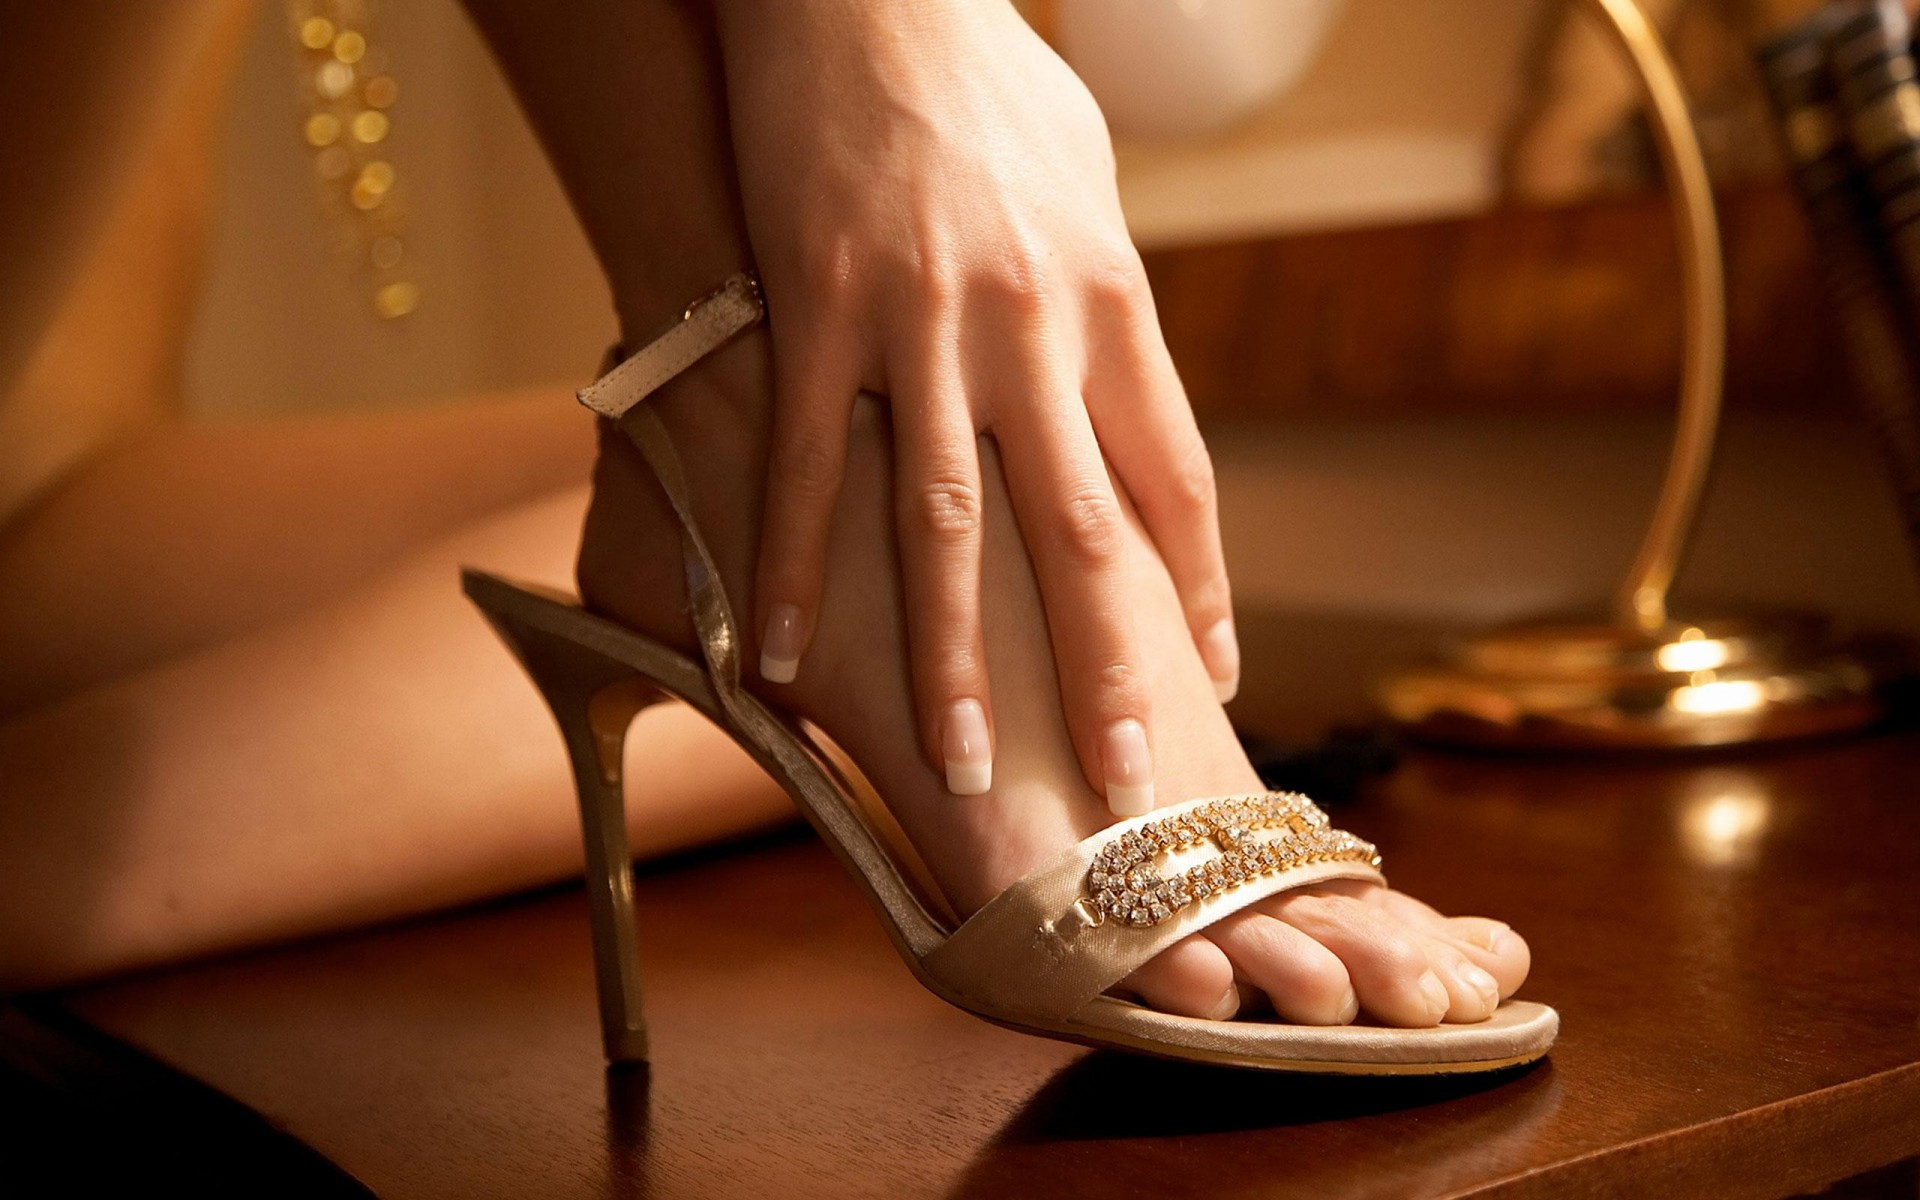 Cathedral: Nelson DeMille: : m: Books Beautiful womens feet photos